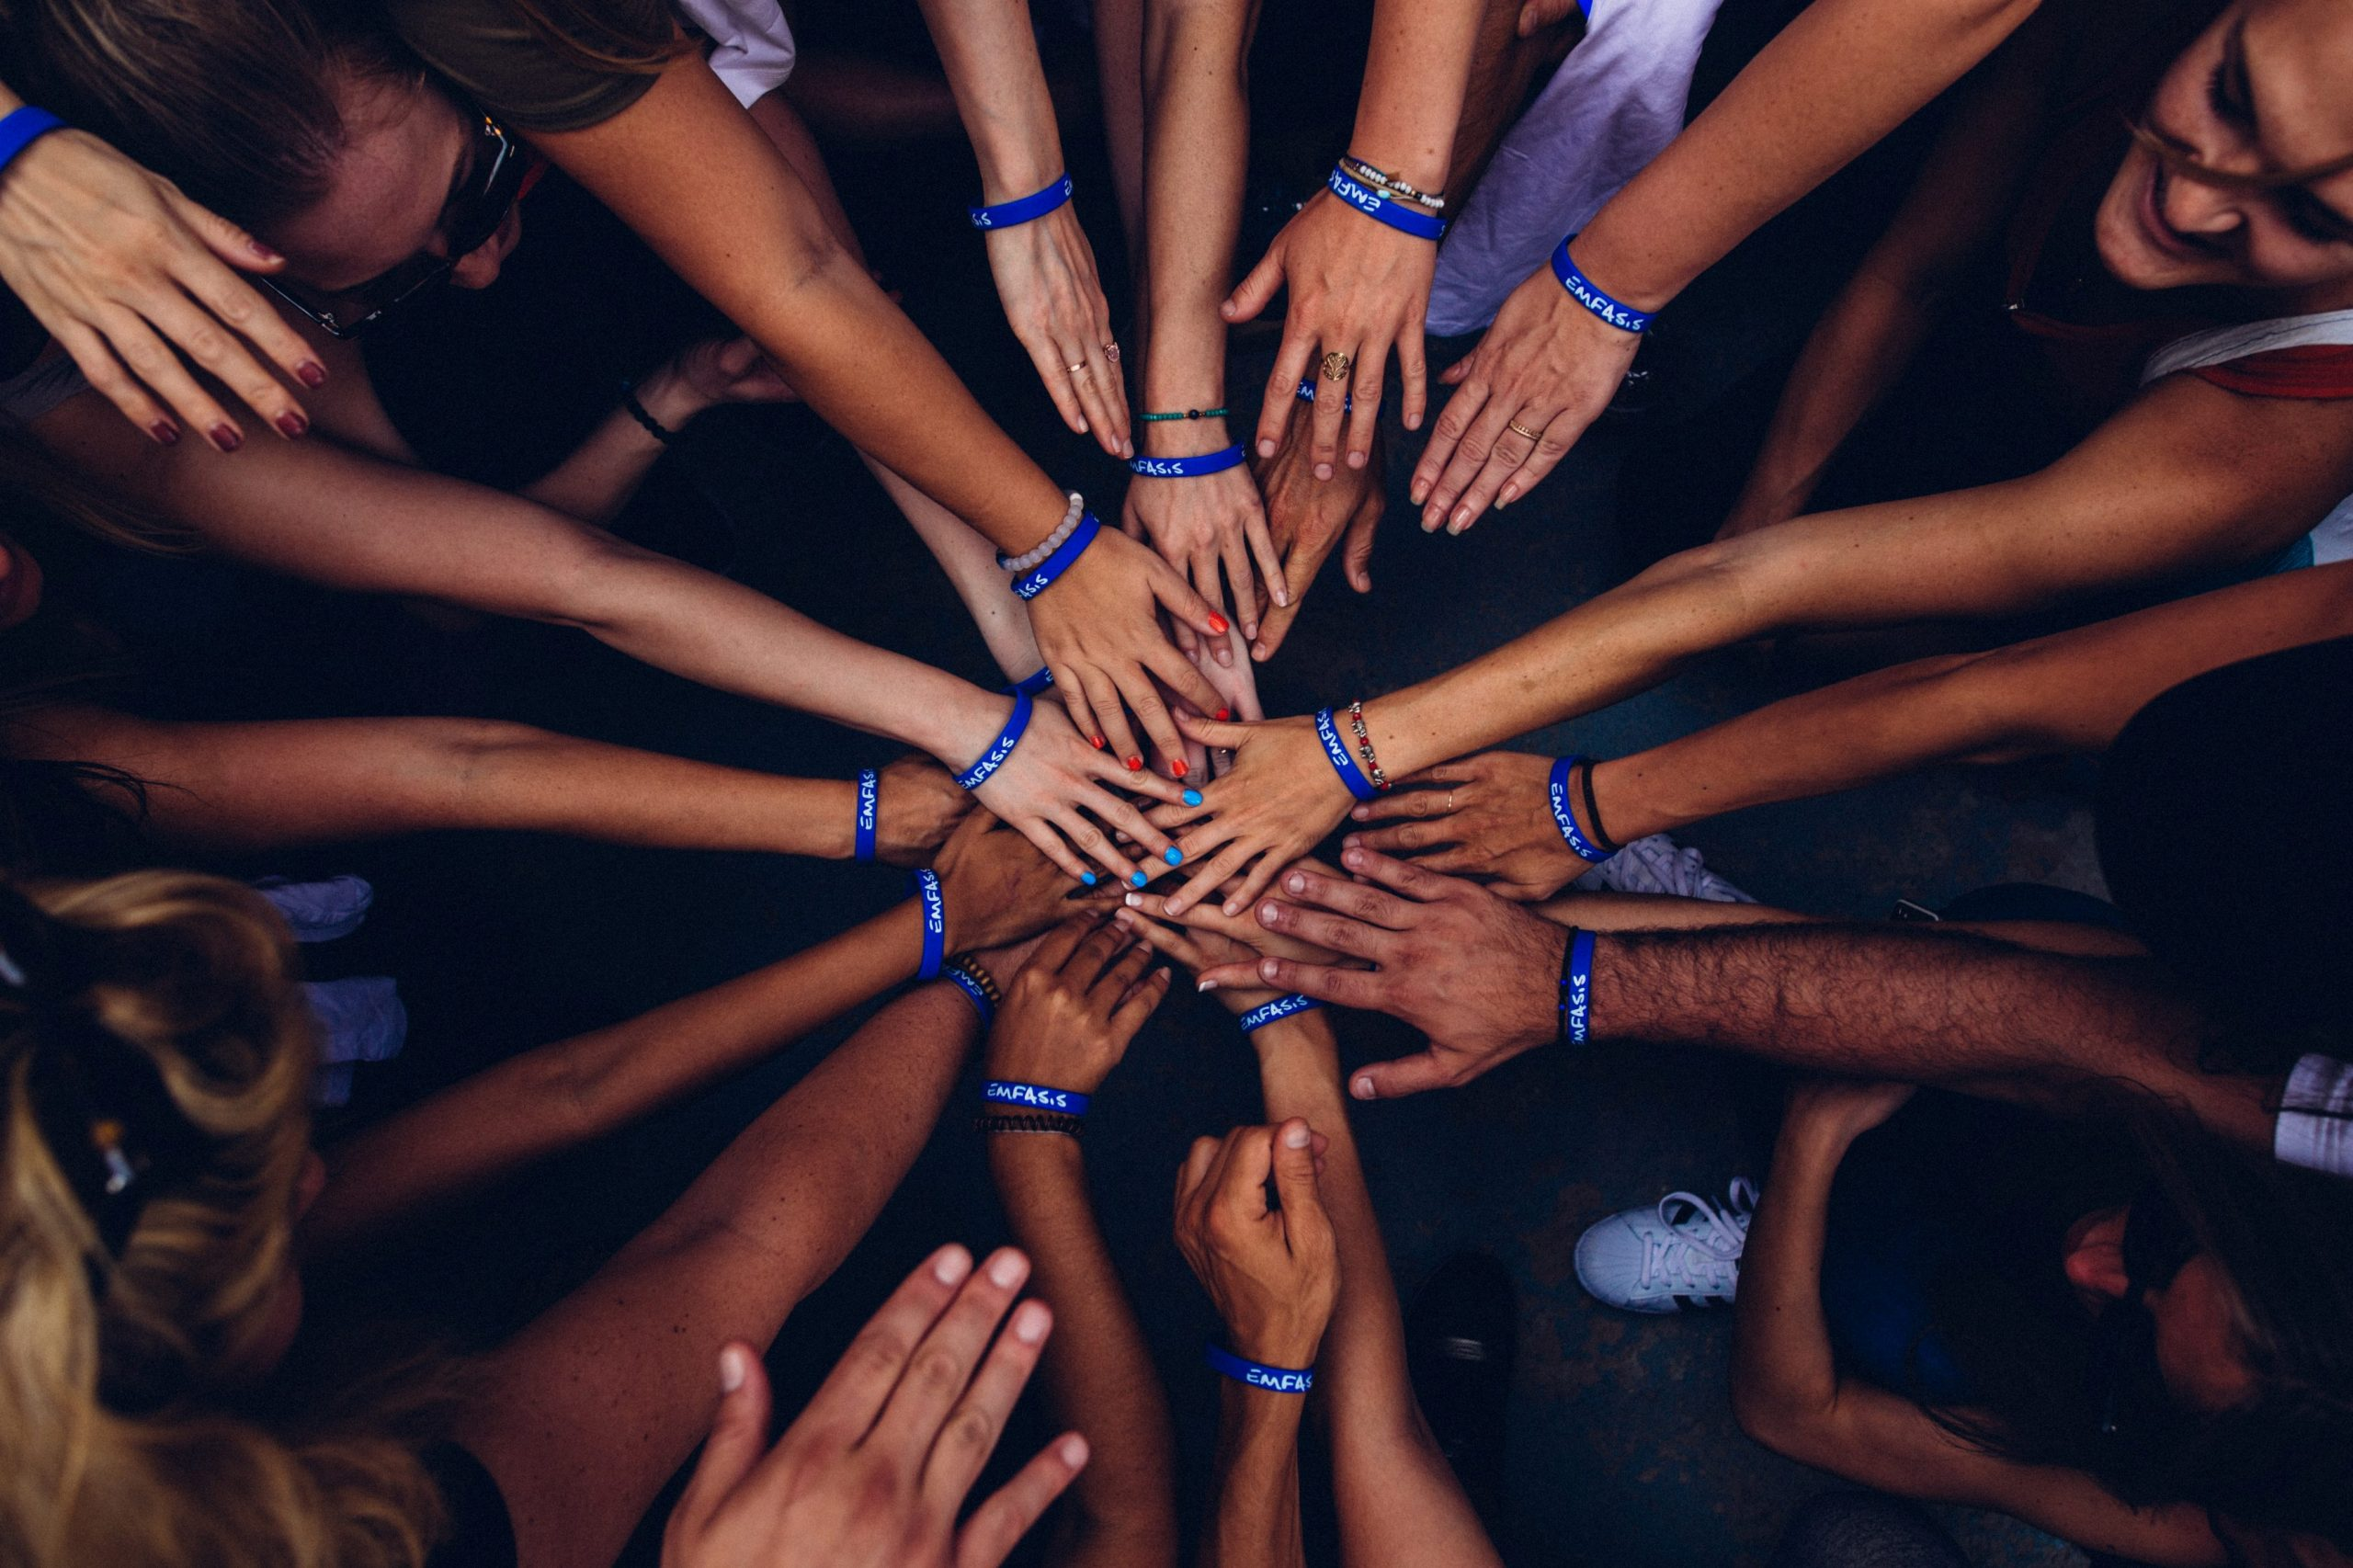 People stand in a circle and reach out with their hands to each other